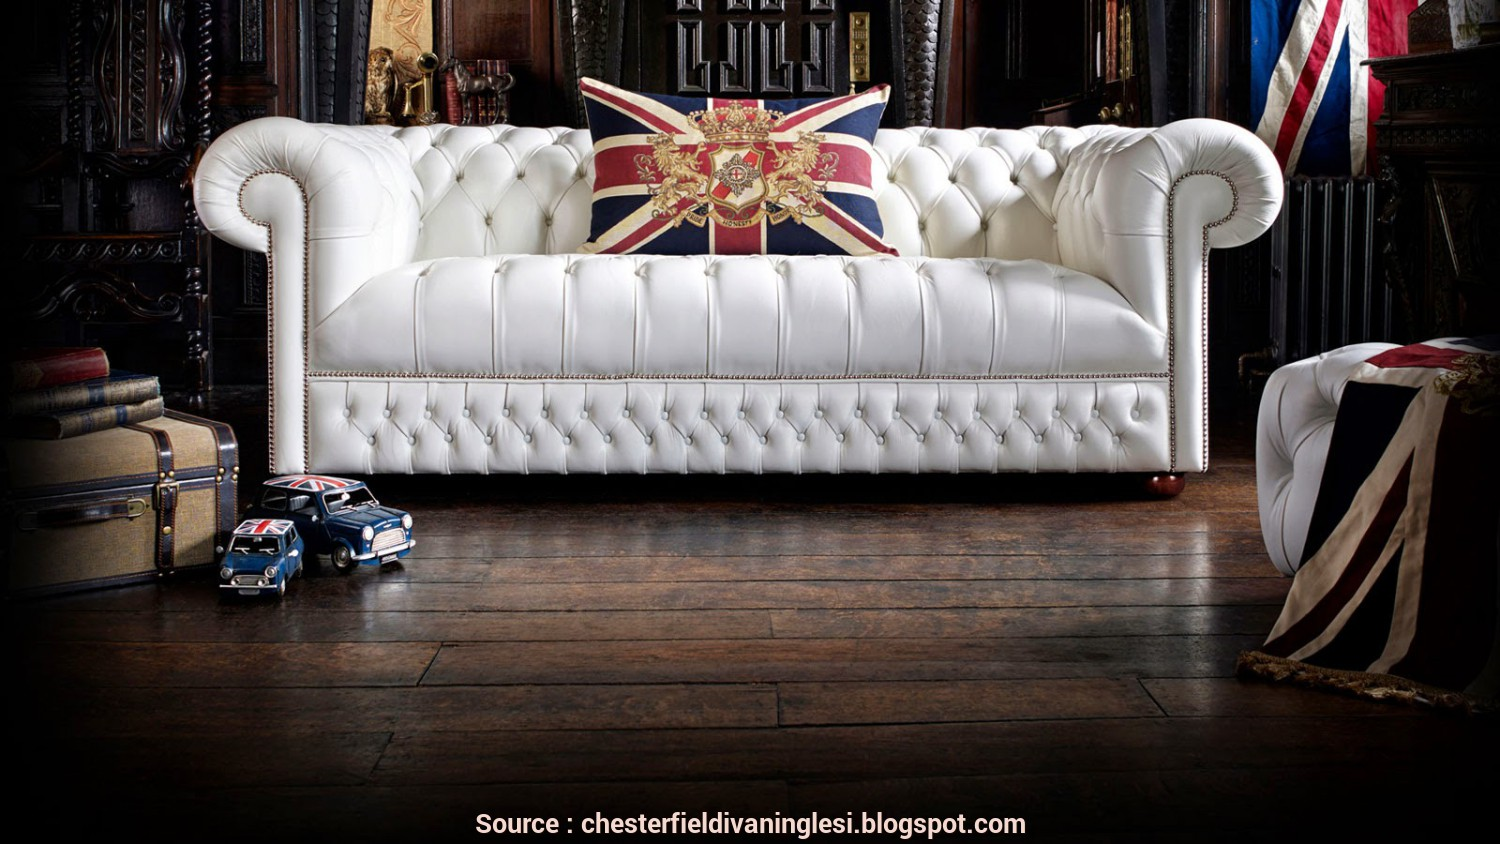 Divano Chester Negozi, Completare Divani Chesterfield Originali Inglesi, ENGLISH CHESTERFIELD CO